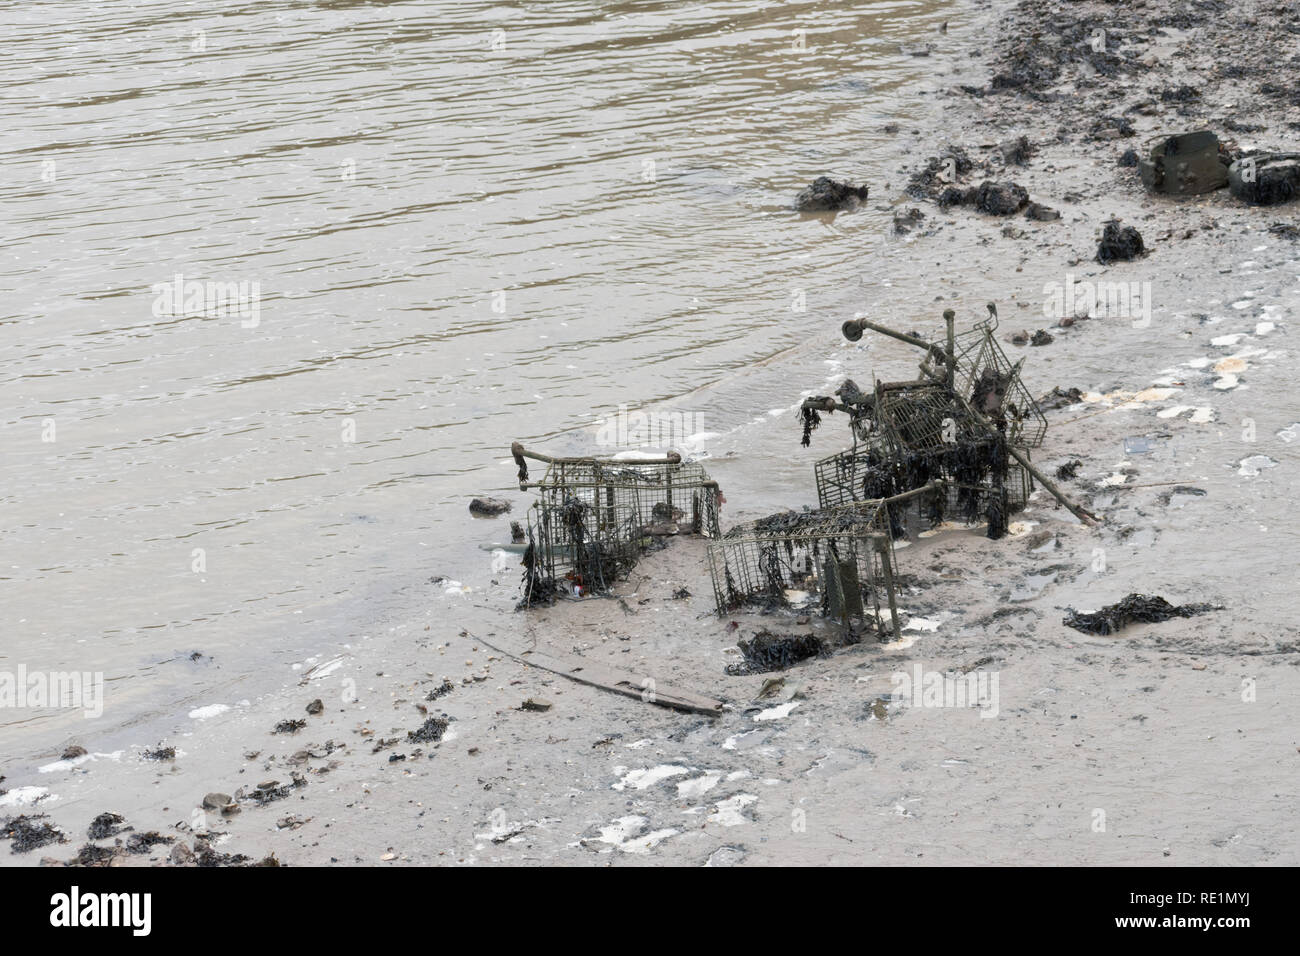 Shopping trolleys and other items thrown into a tidal river are being covered over by mud, silt and seaweed. Shows environmental littering and harm. - Stock Image